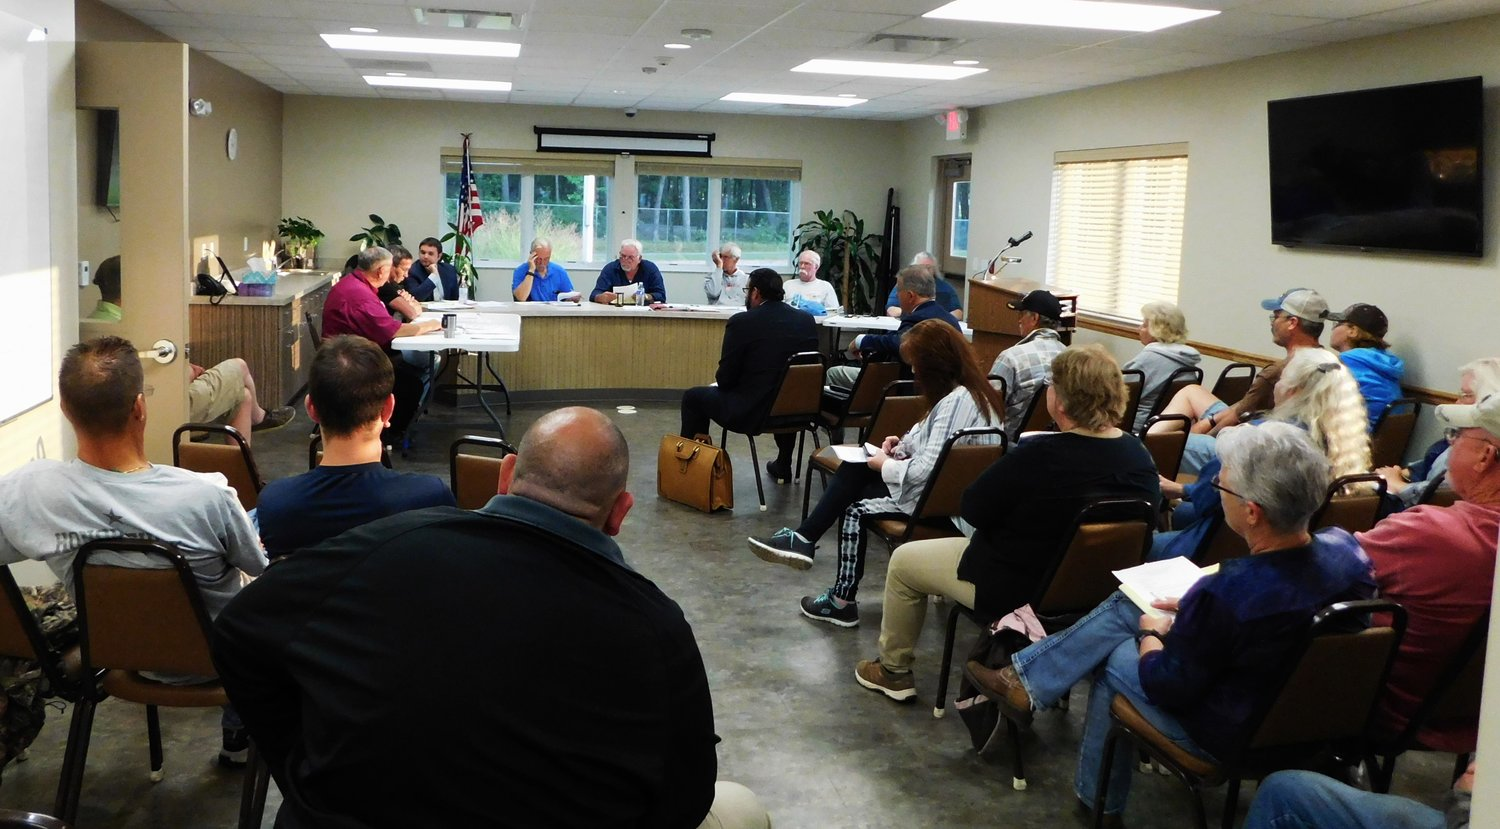 Hayes Township residents filled the board room during a Sept. 9 public hearing and special meeting of the Hayes Township Planning Commission, called for the purpose of adoption of the revised/amended 2019 Township Zoning Ordinances.